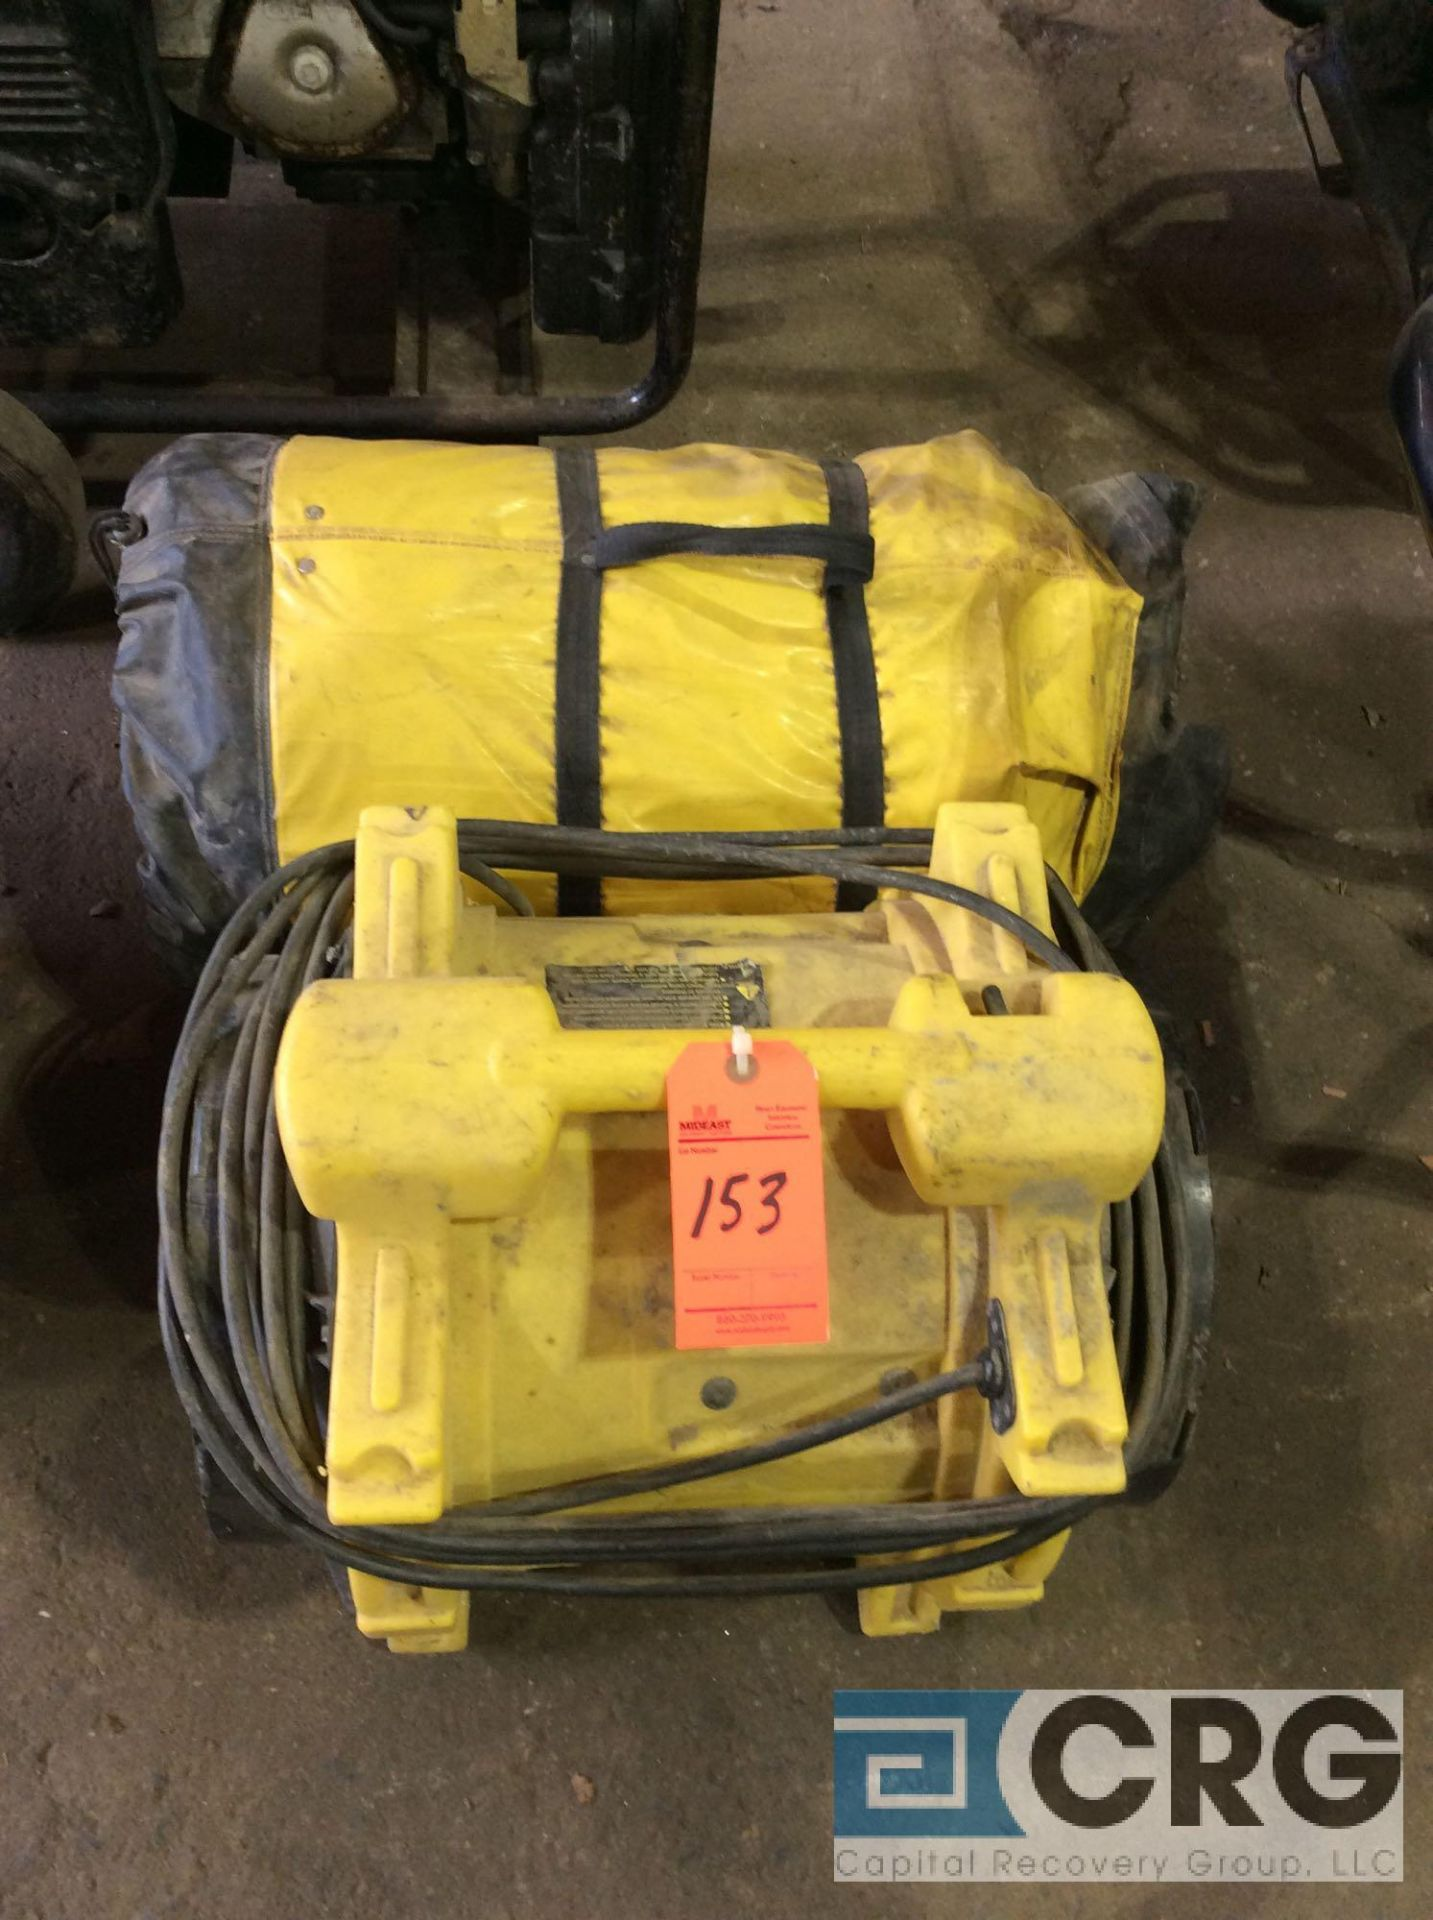 Lot 153 - DRI-EAZ portable blower with exhaust hose